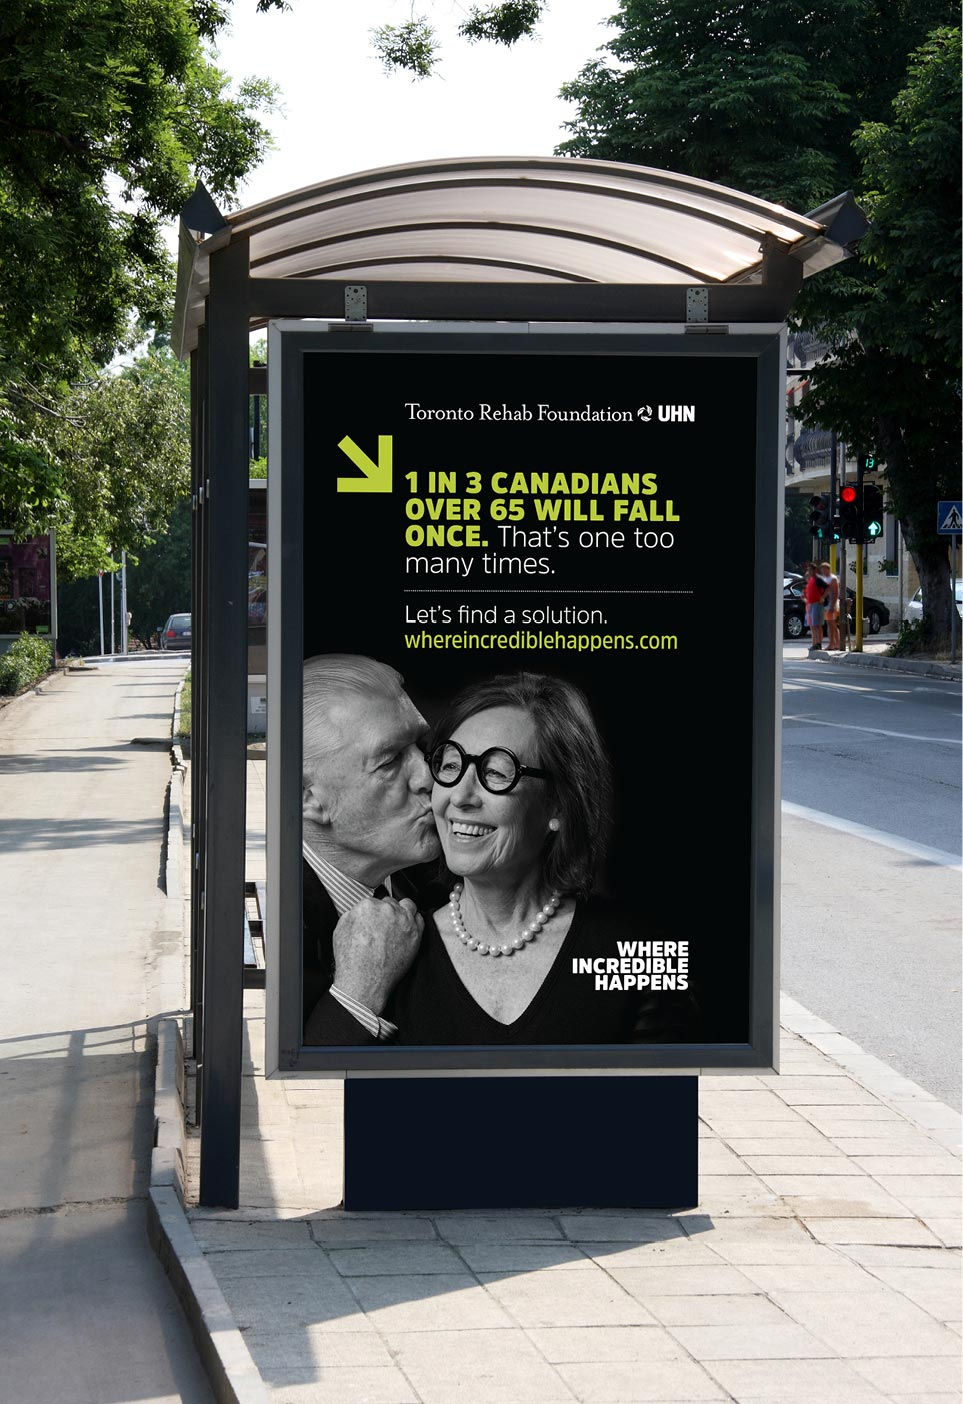 toronto-rehab-foundation-where-incredible-happens-bus-shelter-ad-sputnik-design-partners.jpg